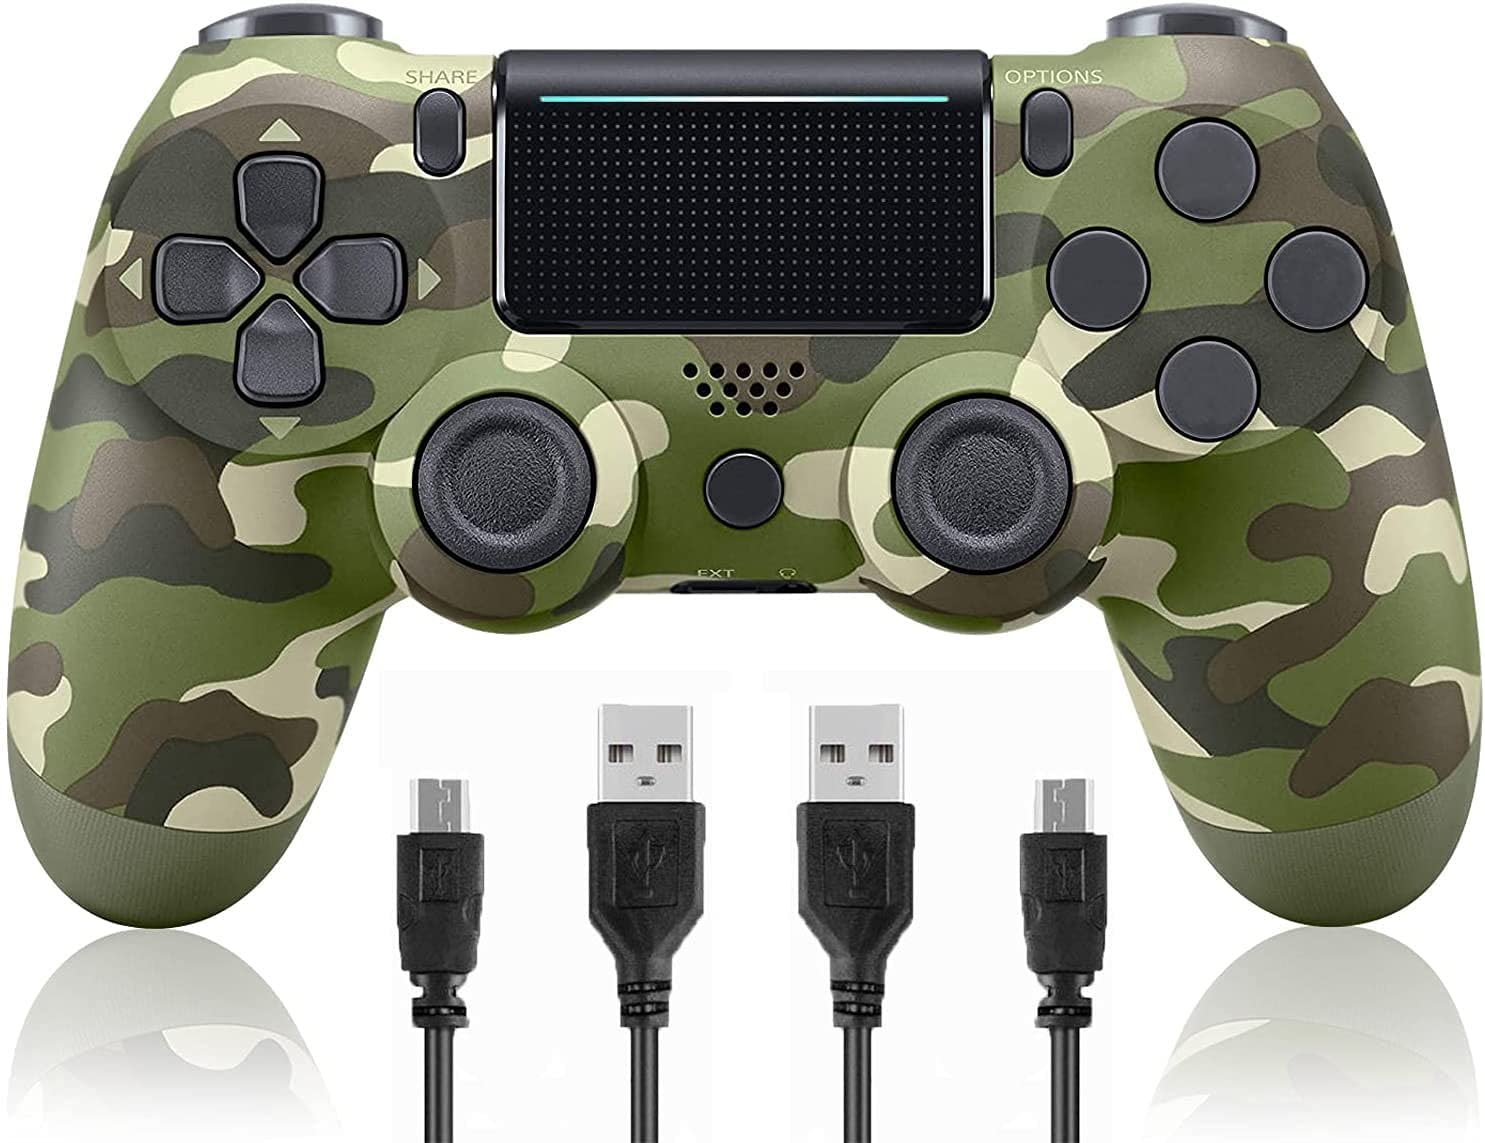 Camo Wireless Controller Compatible with PS4/Slim/Pro Console,Replacement for Official Remote, Gamepad with Gyro/Dual Vibration Motors/Audio Function/Speaker(Green Camouflage)